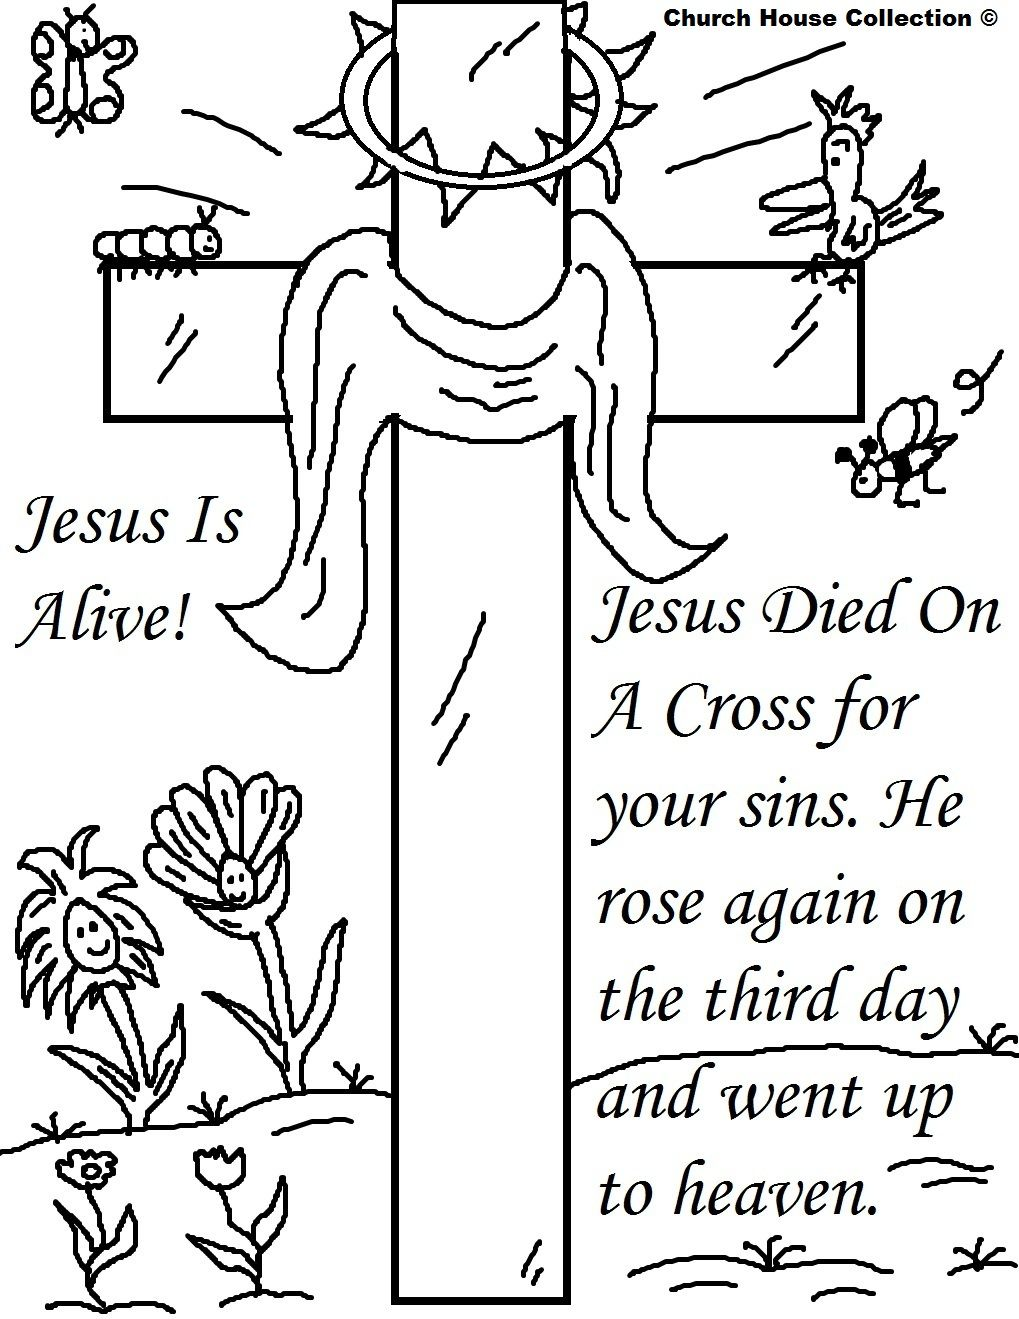 Pin de sbs en Religious Easter Coloring Pages | Pinterest